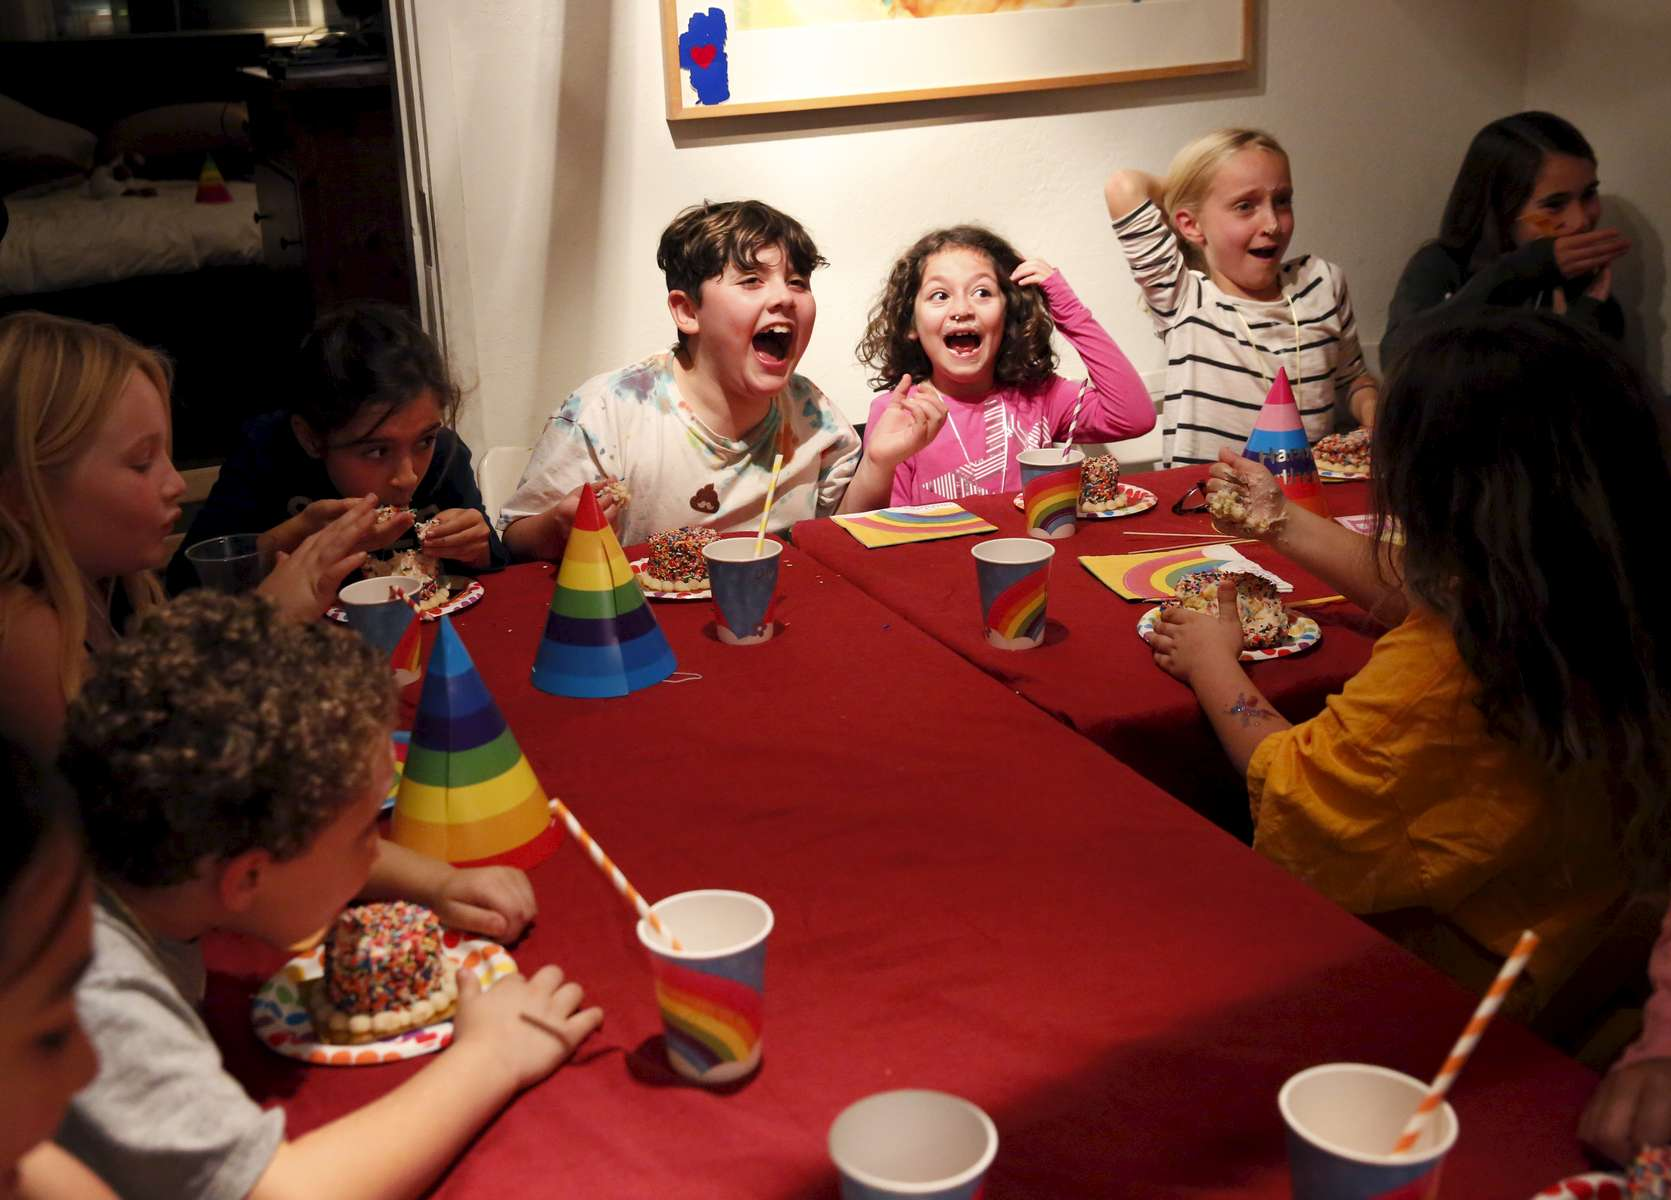 James Kaplan, 9, center, laughs with friends after smashing his face into his cake, from left, Serene Kimball, 8, Simone Zabarsky, 8, Clara, 8, Juna French, 8, and Audrey Malker, 8 Dec. 1, 2016 during his birthday party in Berkeley, Calif. James counted down the days until his birthday, which he and his mother decided to use the theme of {quote}one year old{quote} to celebrate his first full year living as his true self.